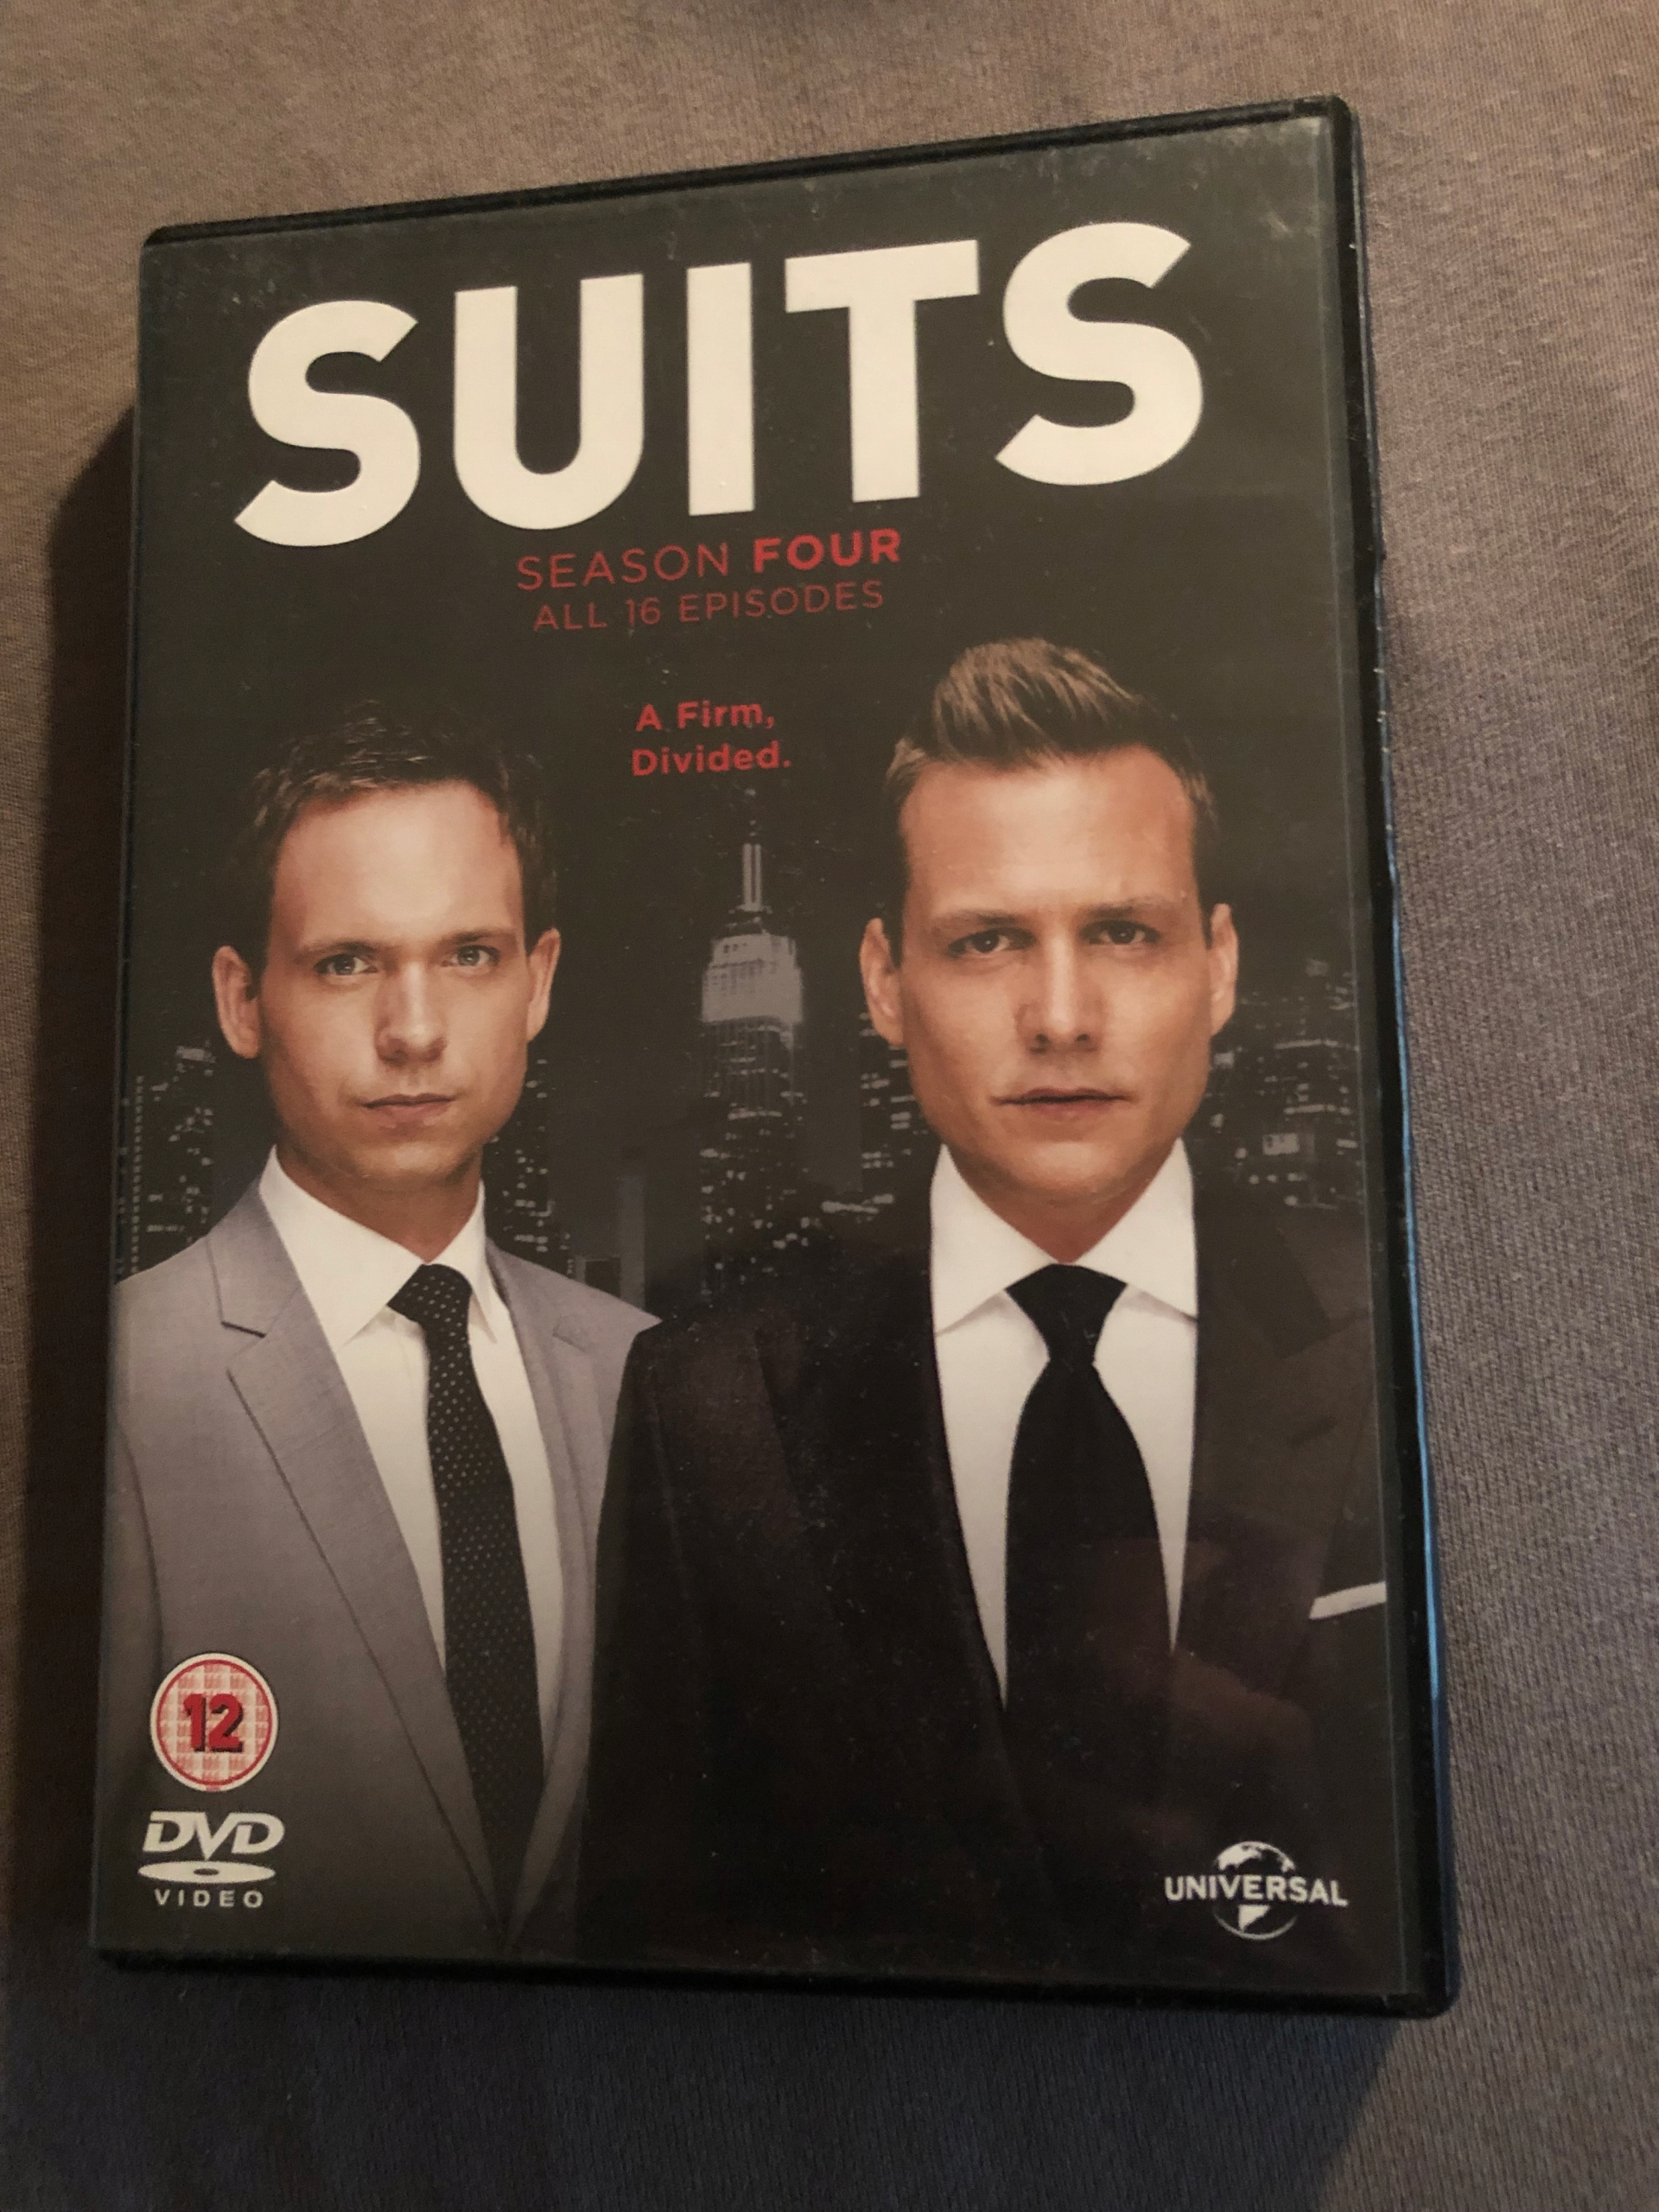 SUITS DVD sezon 4 ANG